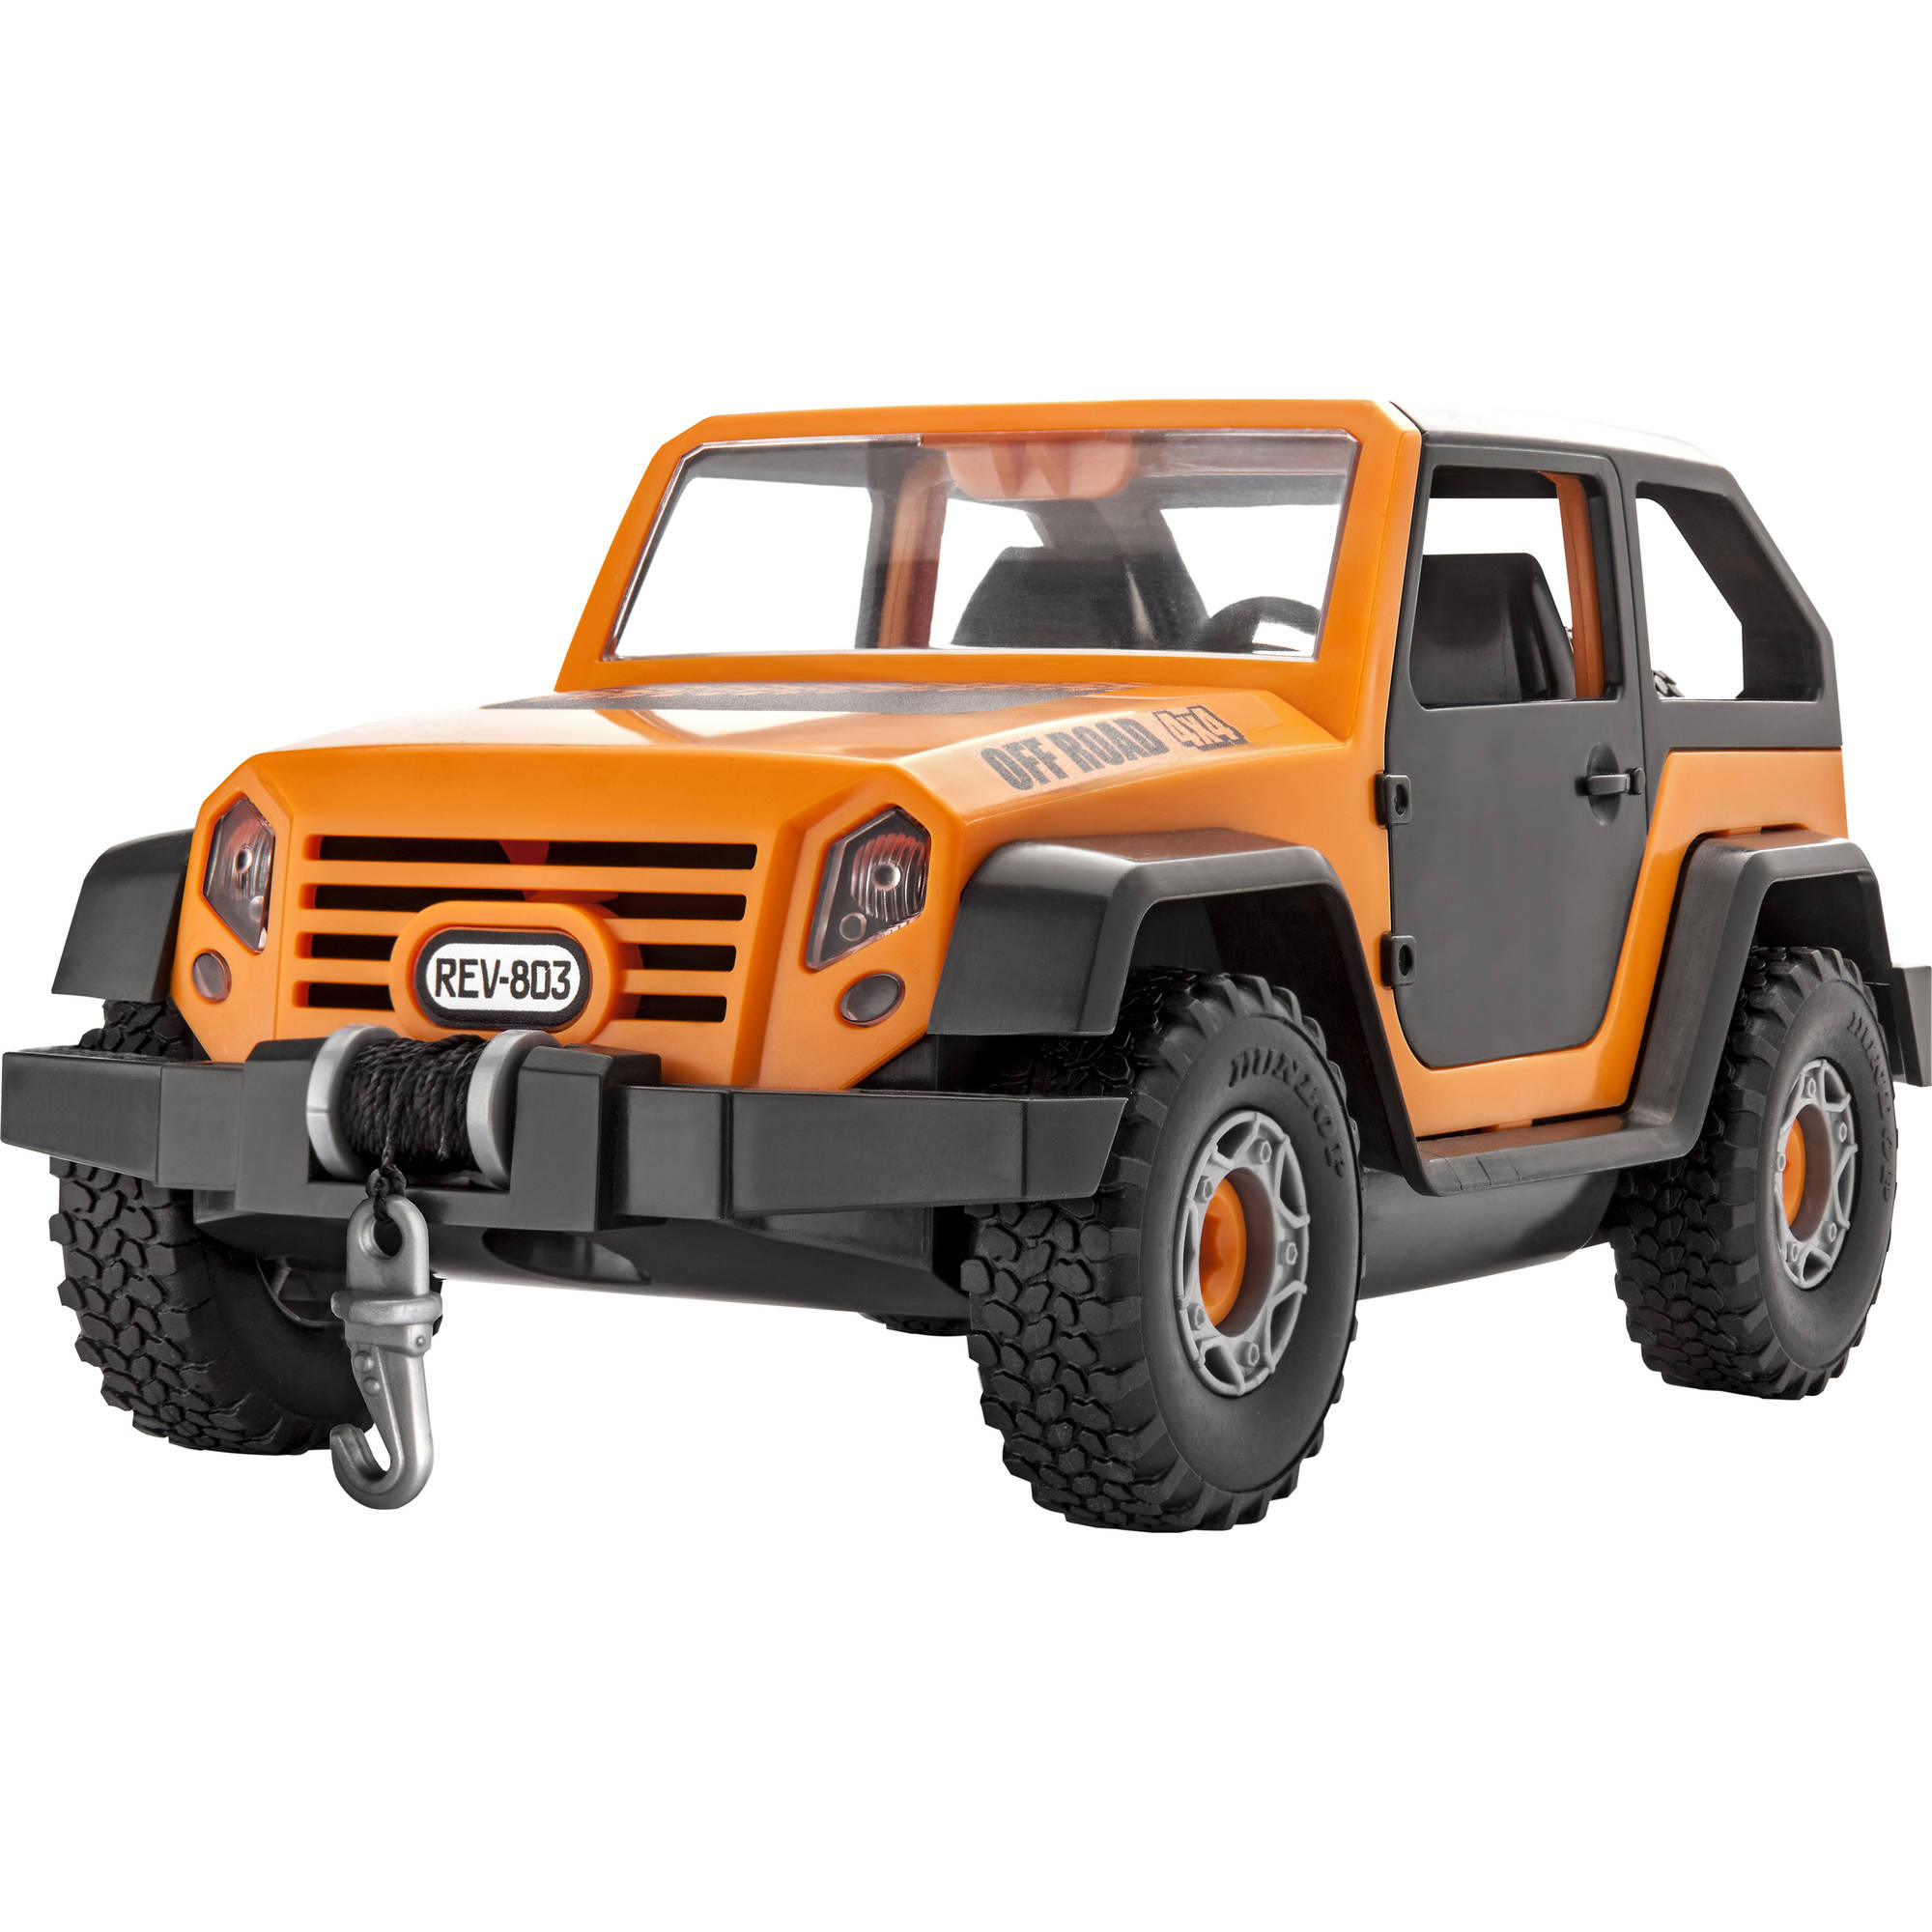 Revell Junior Kit Off-Road Vehicle Plastic Model Kit